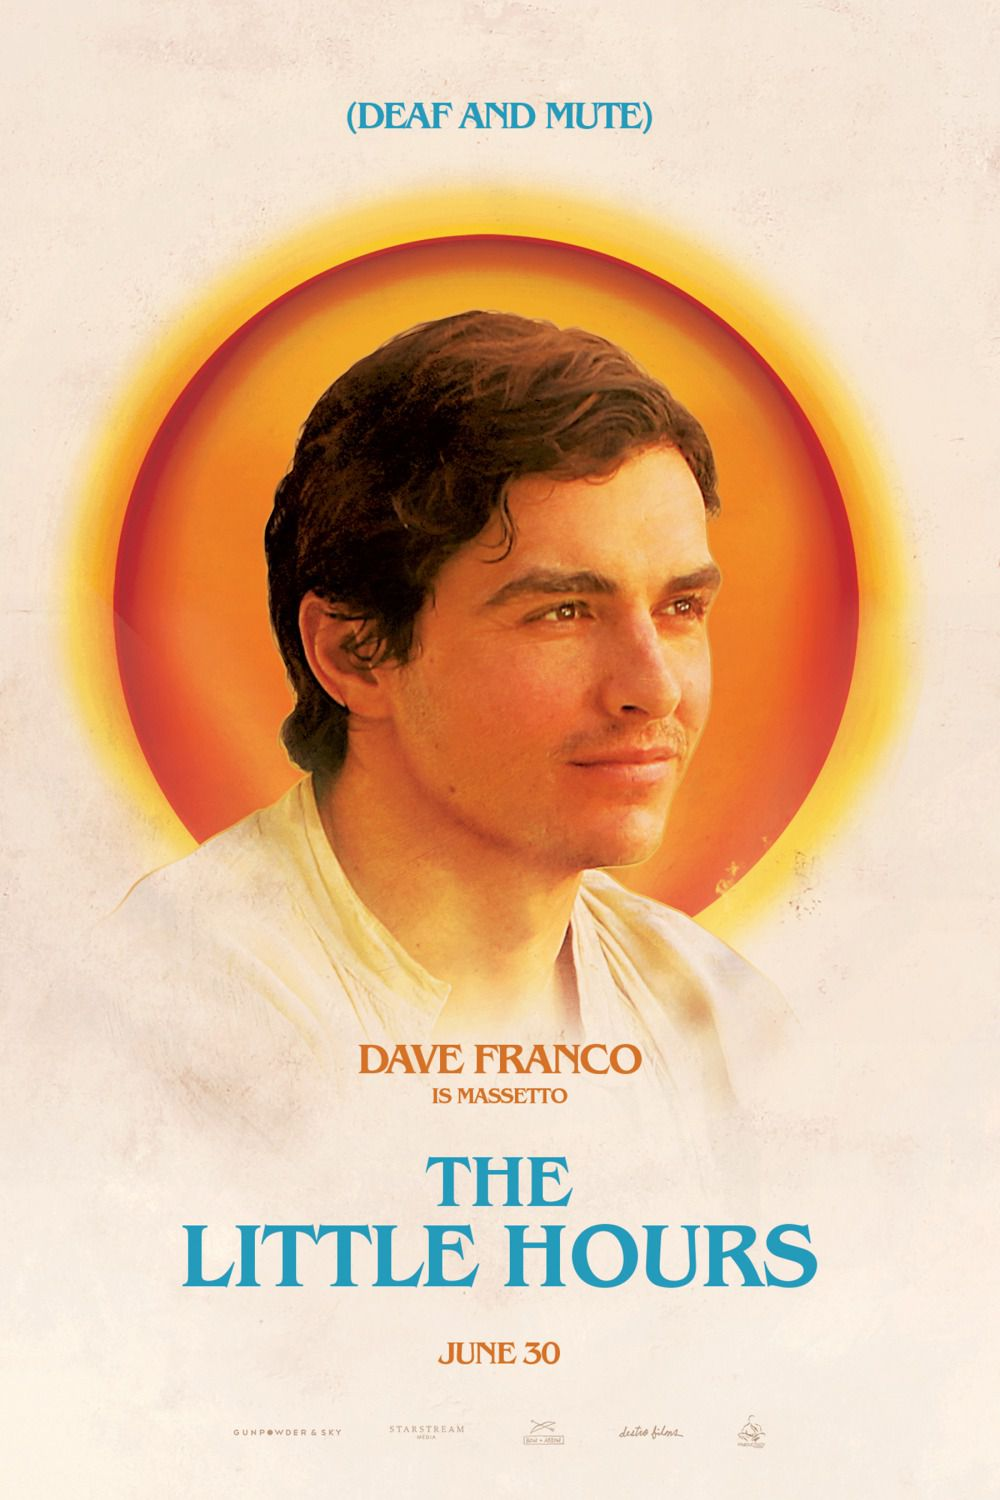 Little Hours - poster - Dave Franco - Massetto